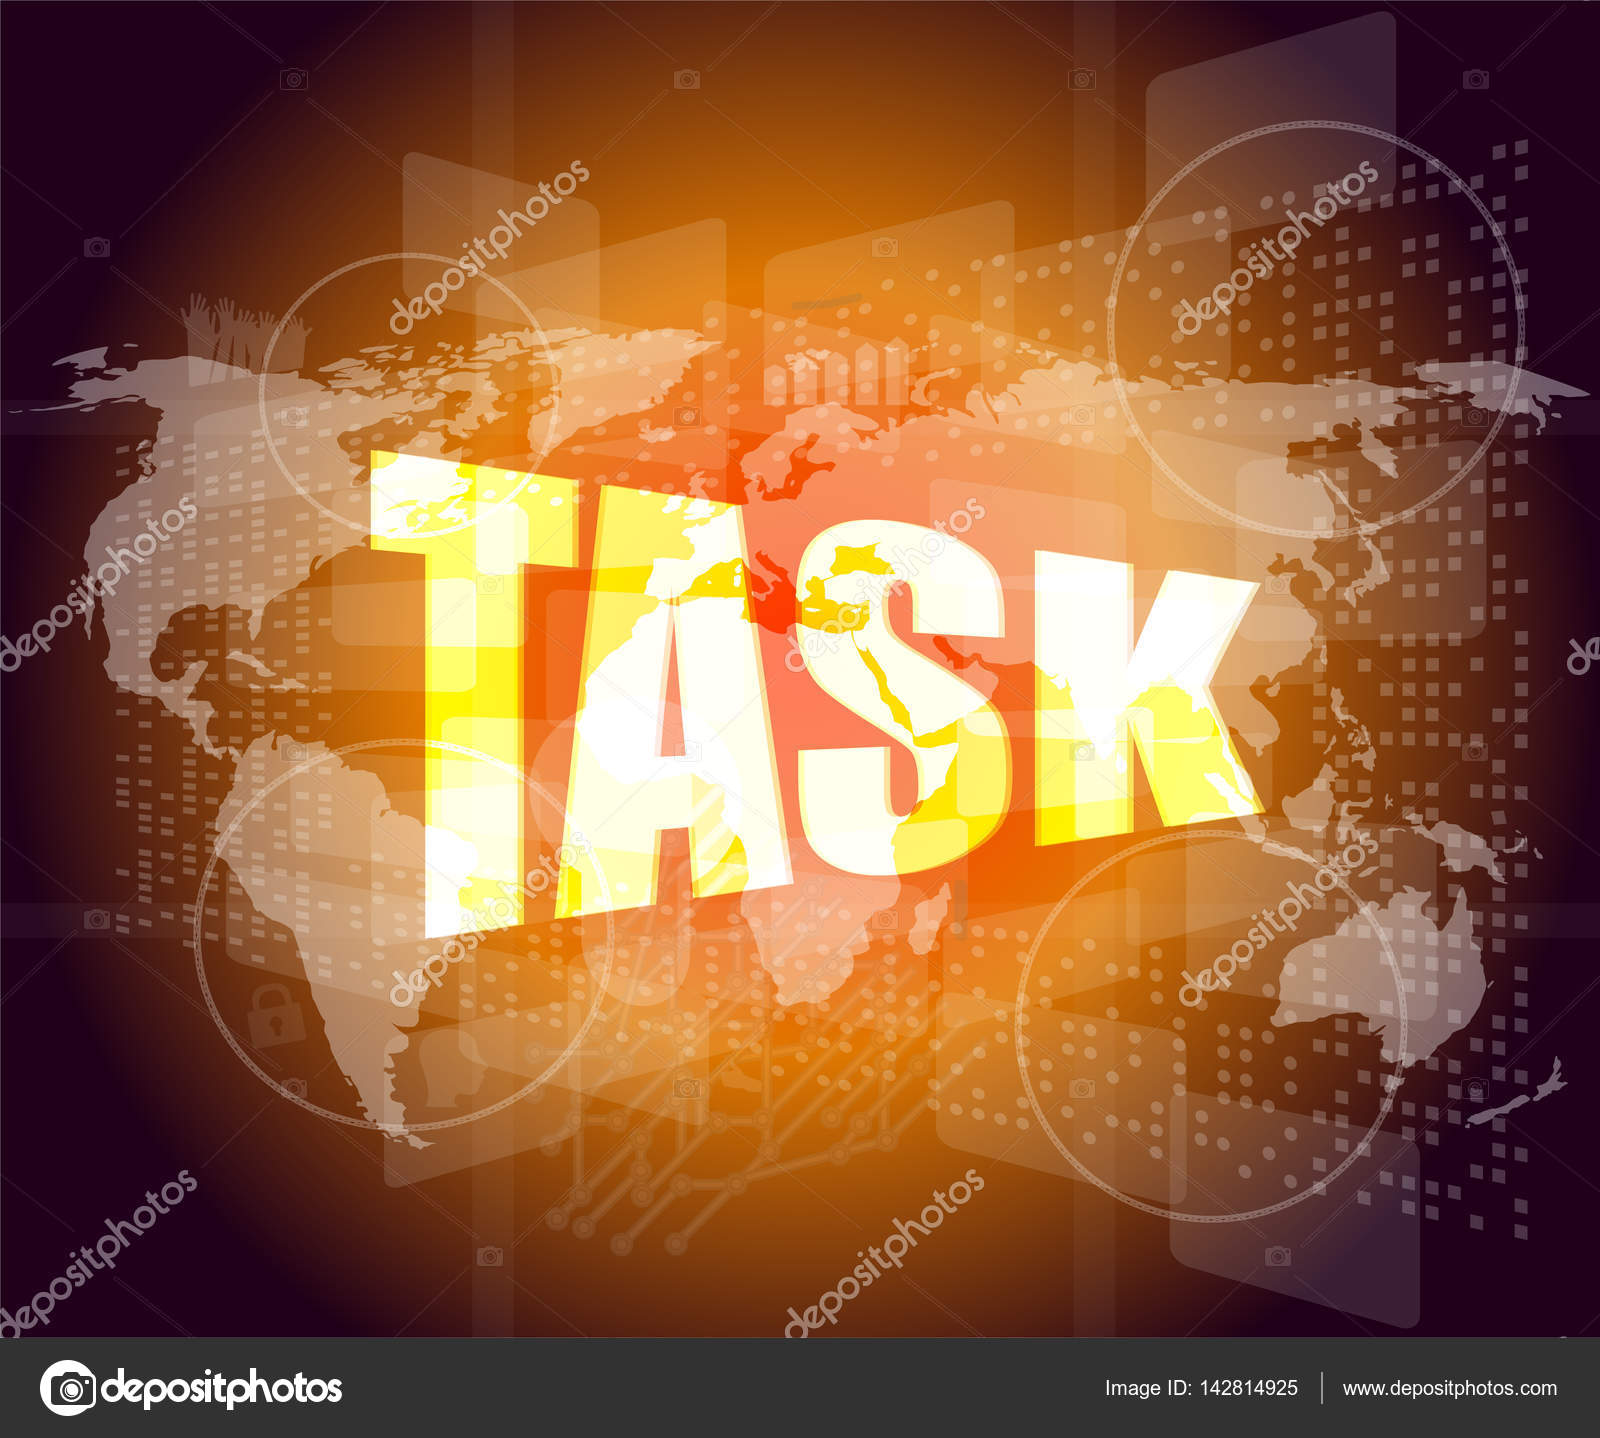 Task word on digital screen background with world map stock photo task word on digital screen background with world map stock photo gumiabroncs Choice Image